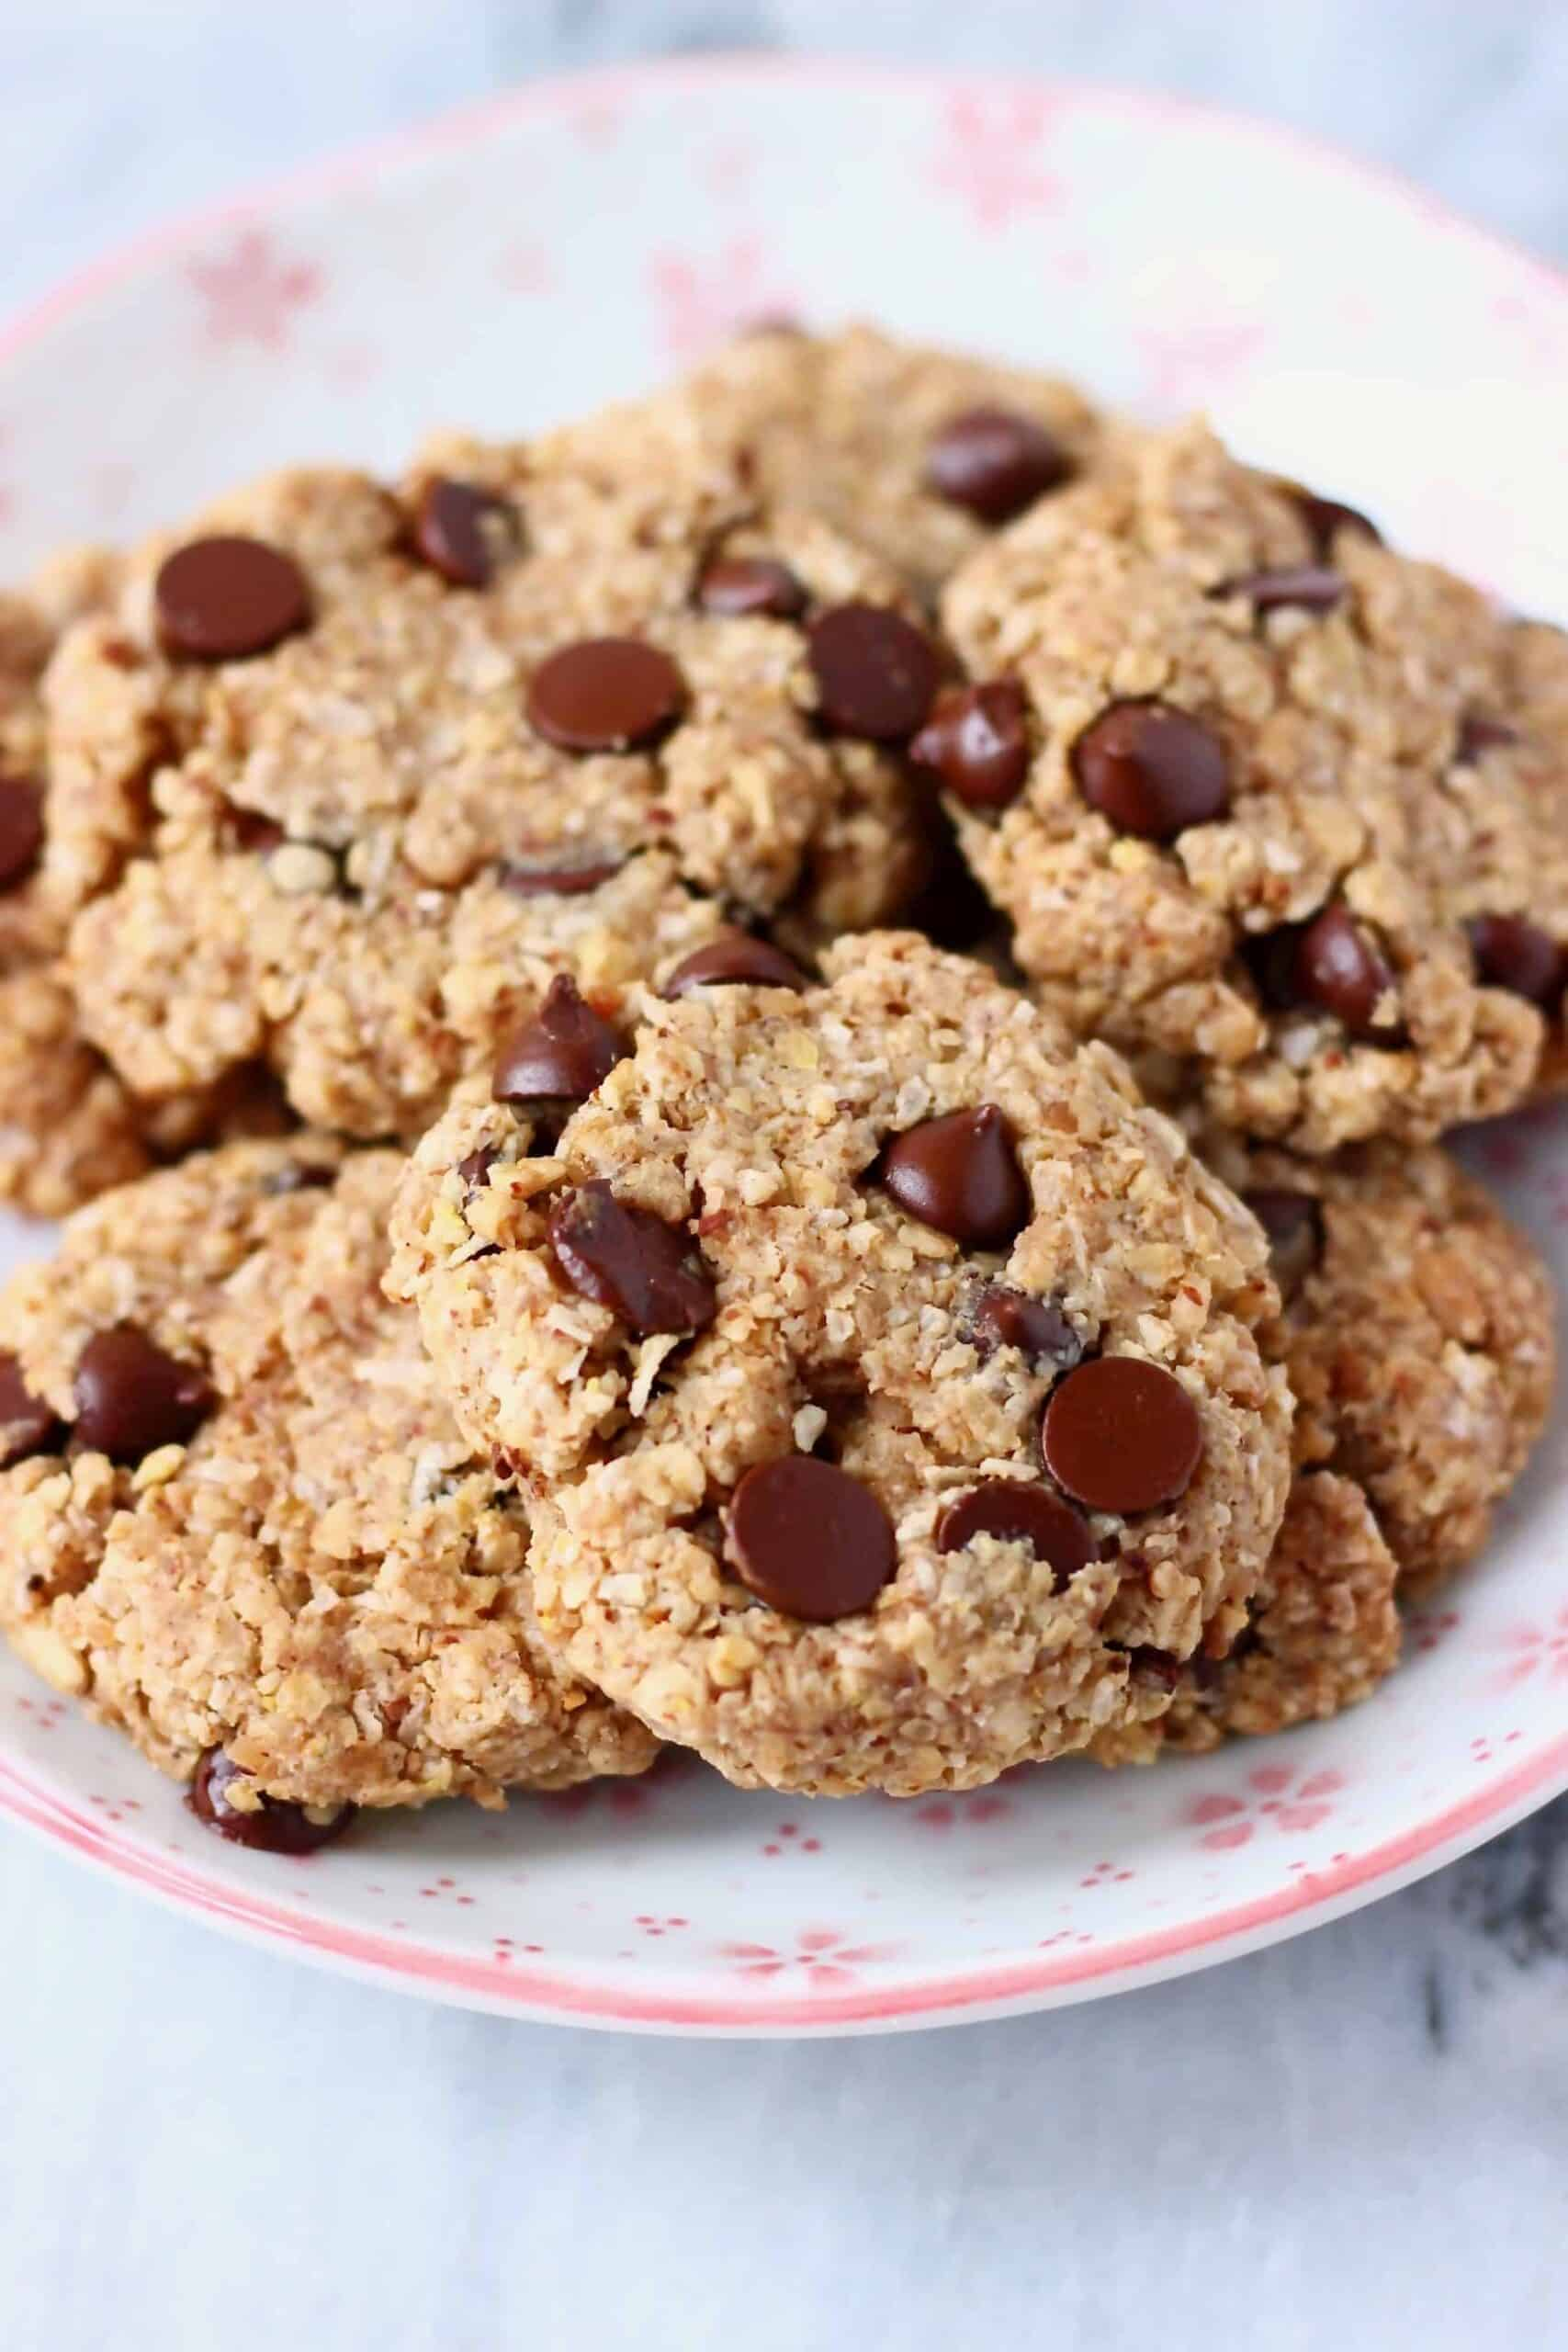 Photo of a pile of chocolate chip cookies on a white plate decorated with pink flowers